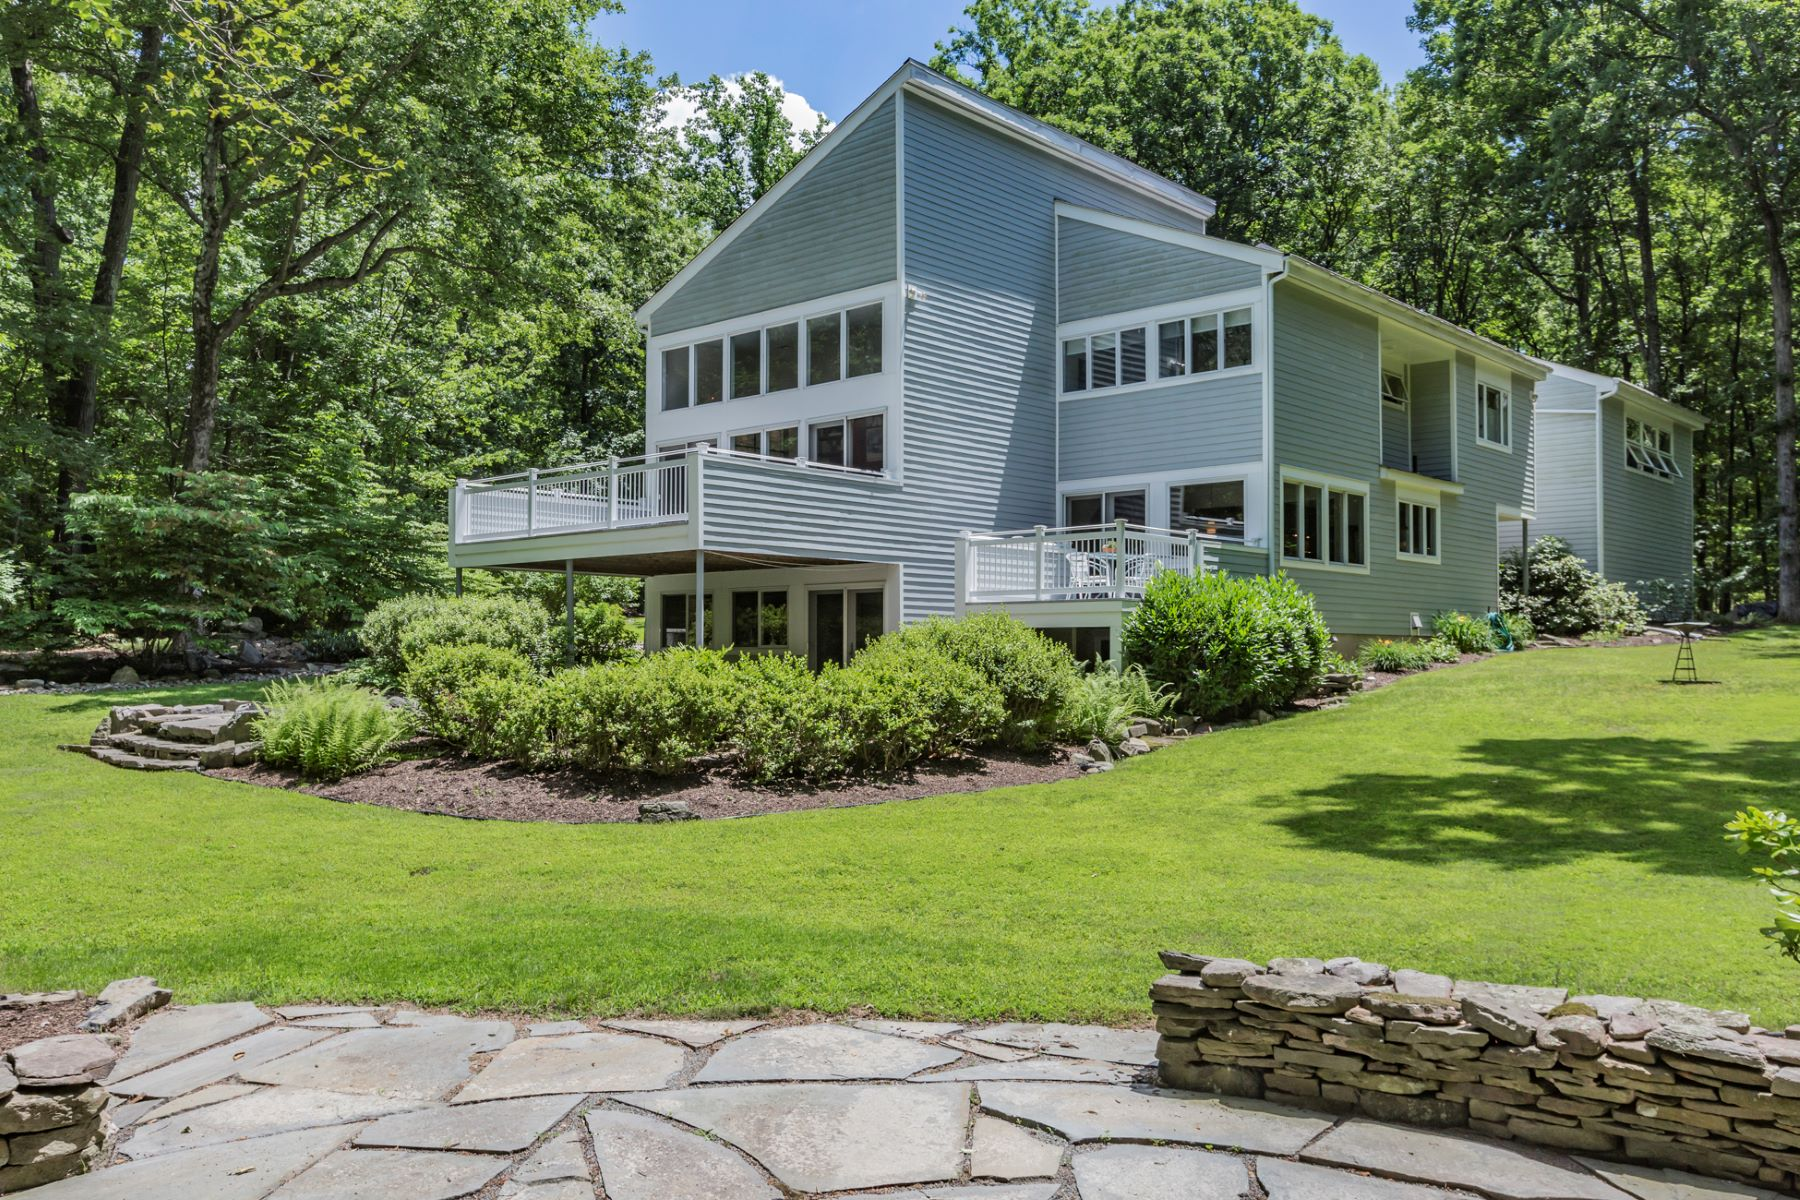 Villa per Vendita alle ore Renovated Modern Retreat Near Hopewell Borough - East Amwell Township 58 Mountain Road Hopewell, New Jersey 08525 Stati Uniti